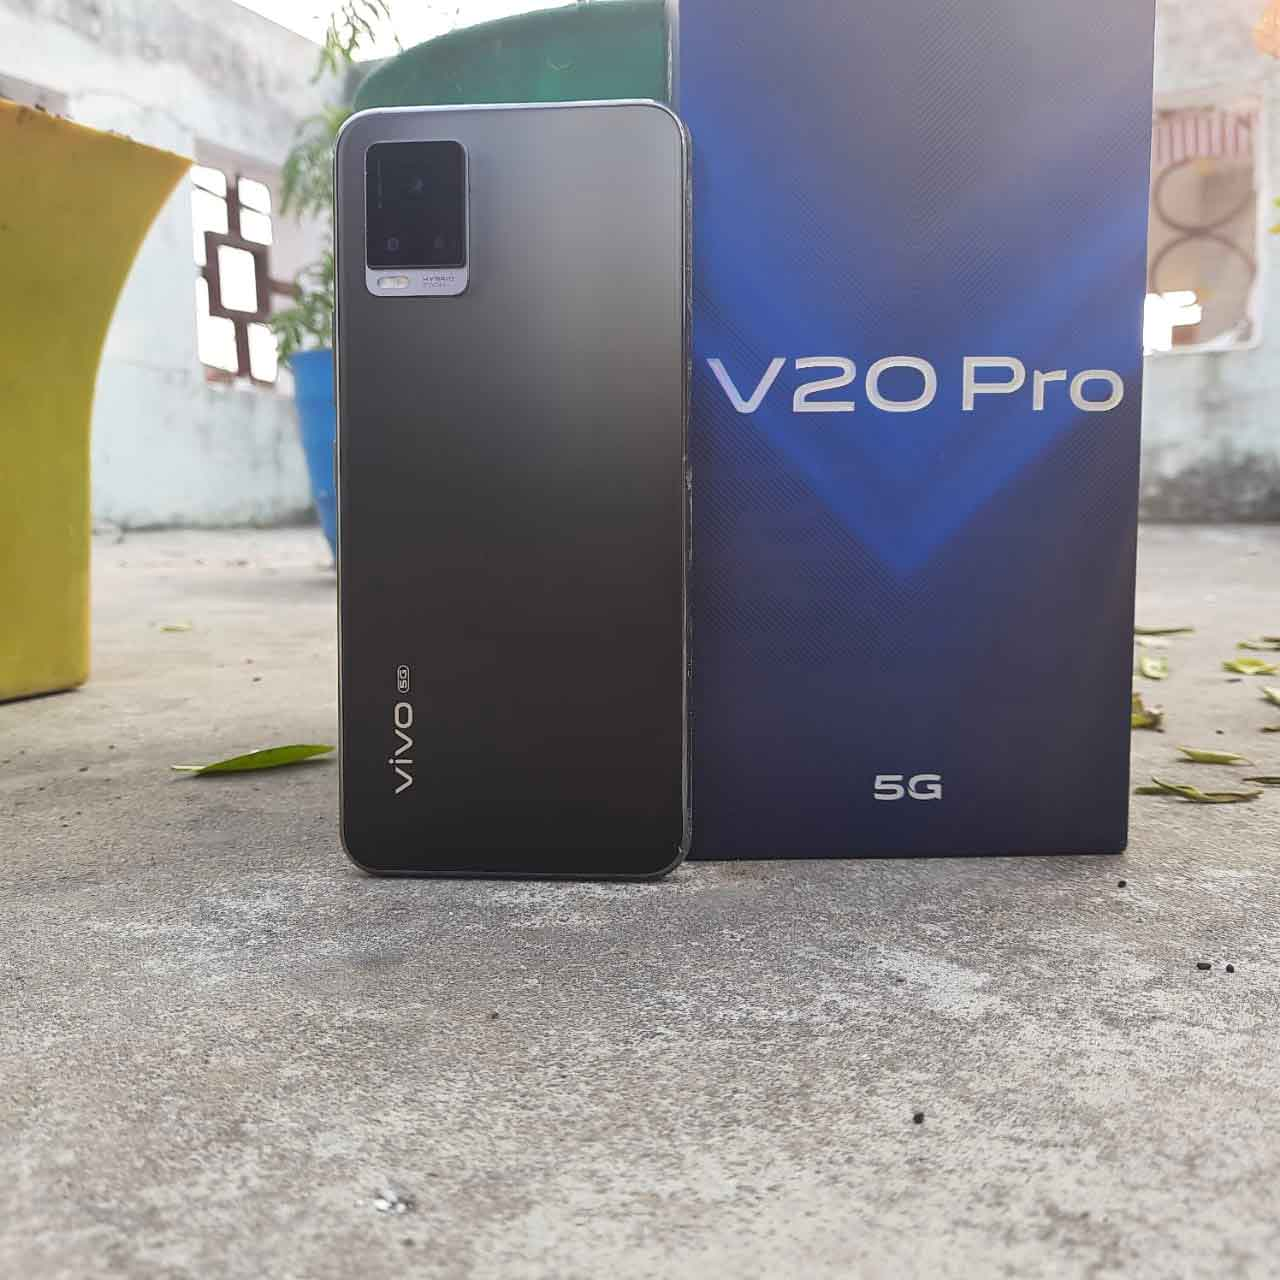 Vivo V20 Pro vs Samsung Galaxy F41 - Specifications Compared, Price in India, and Features